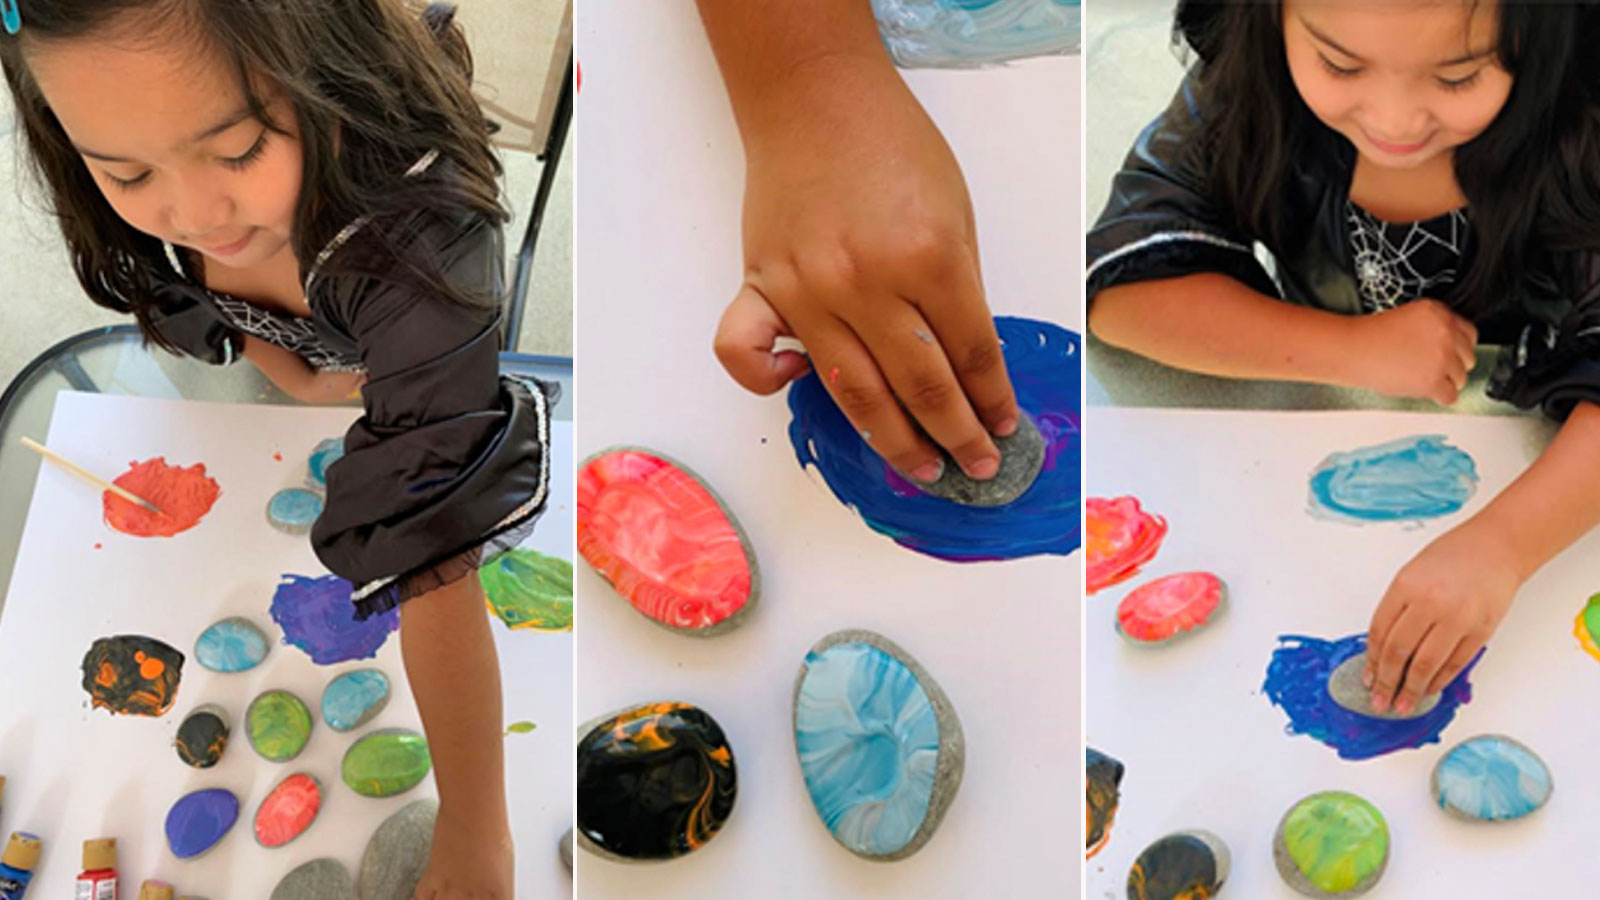 slide 3 - A young girl paints rocks to look like exoplanets